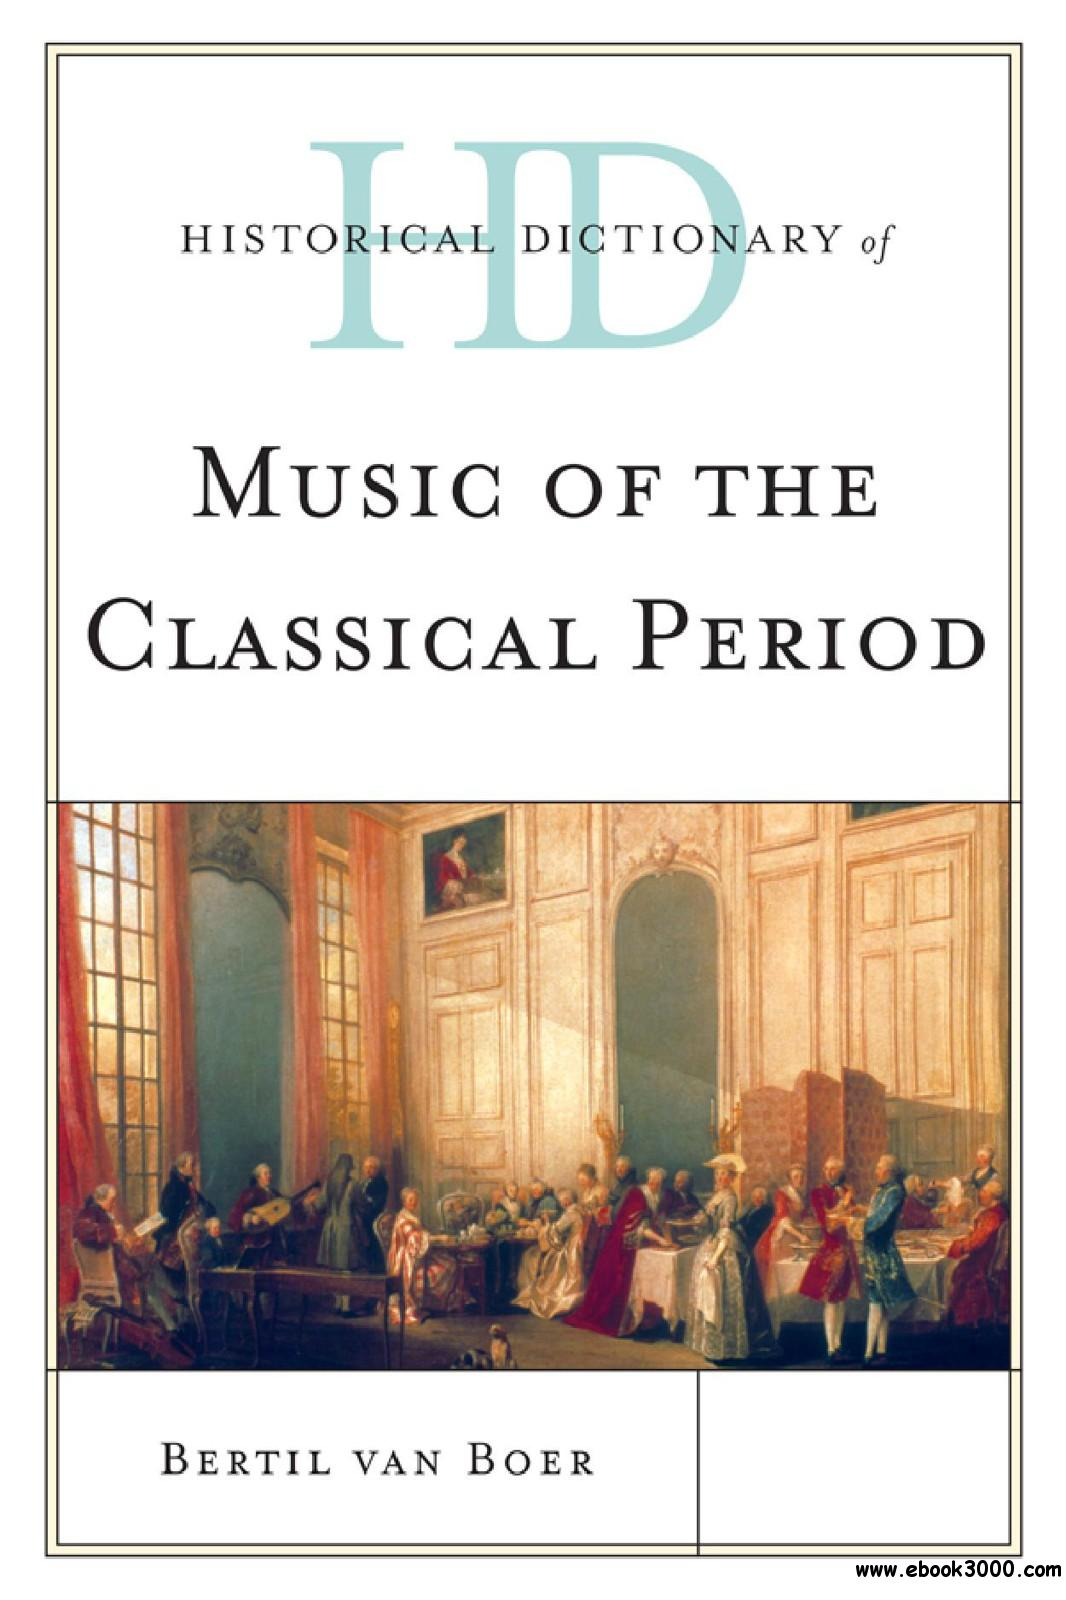 Historical Dictionary of Music of the Classical Period free download